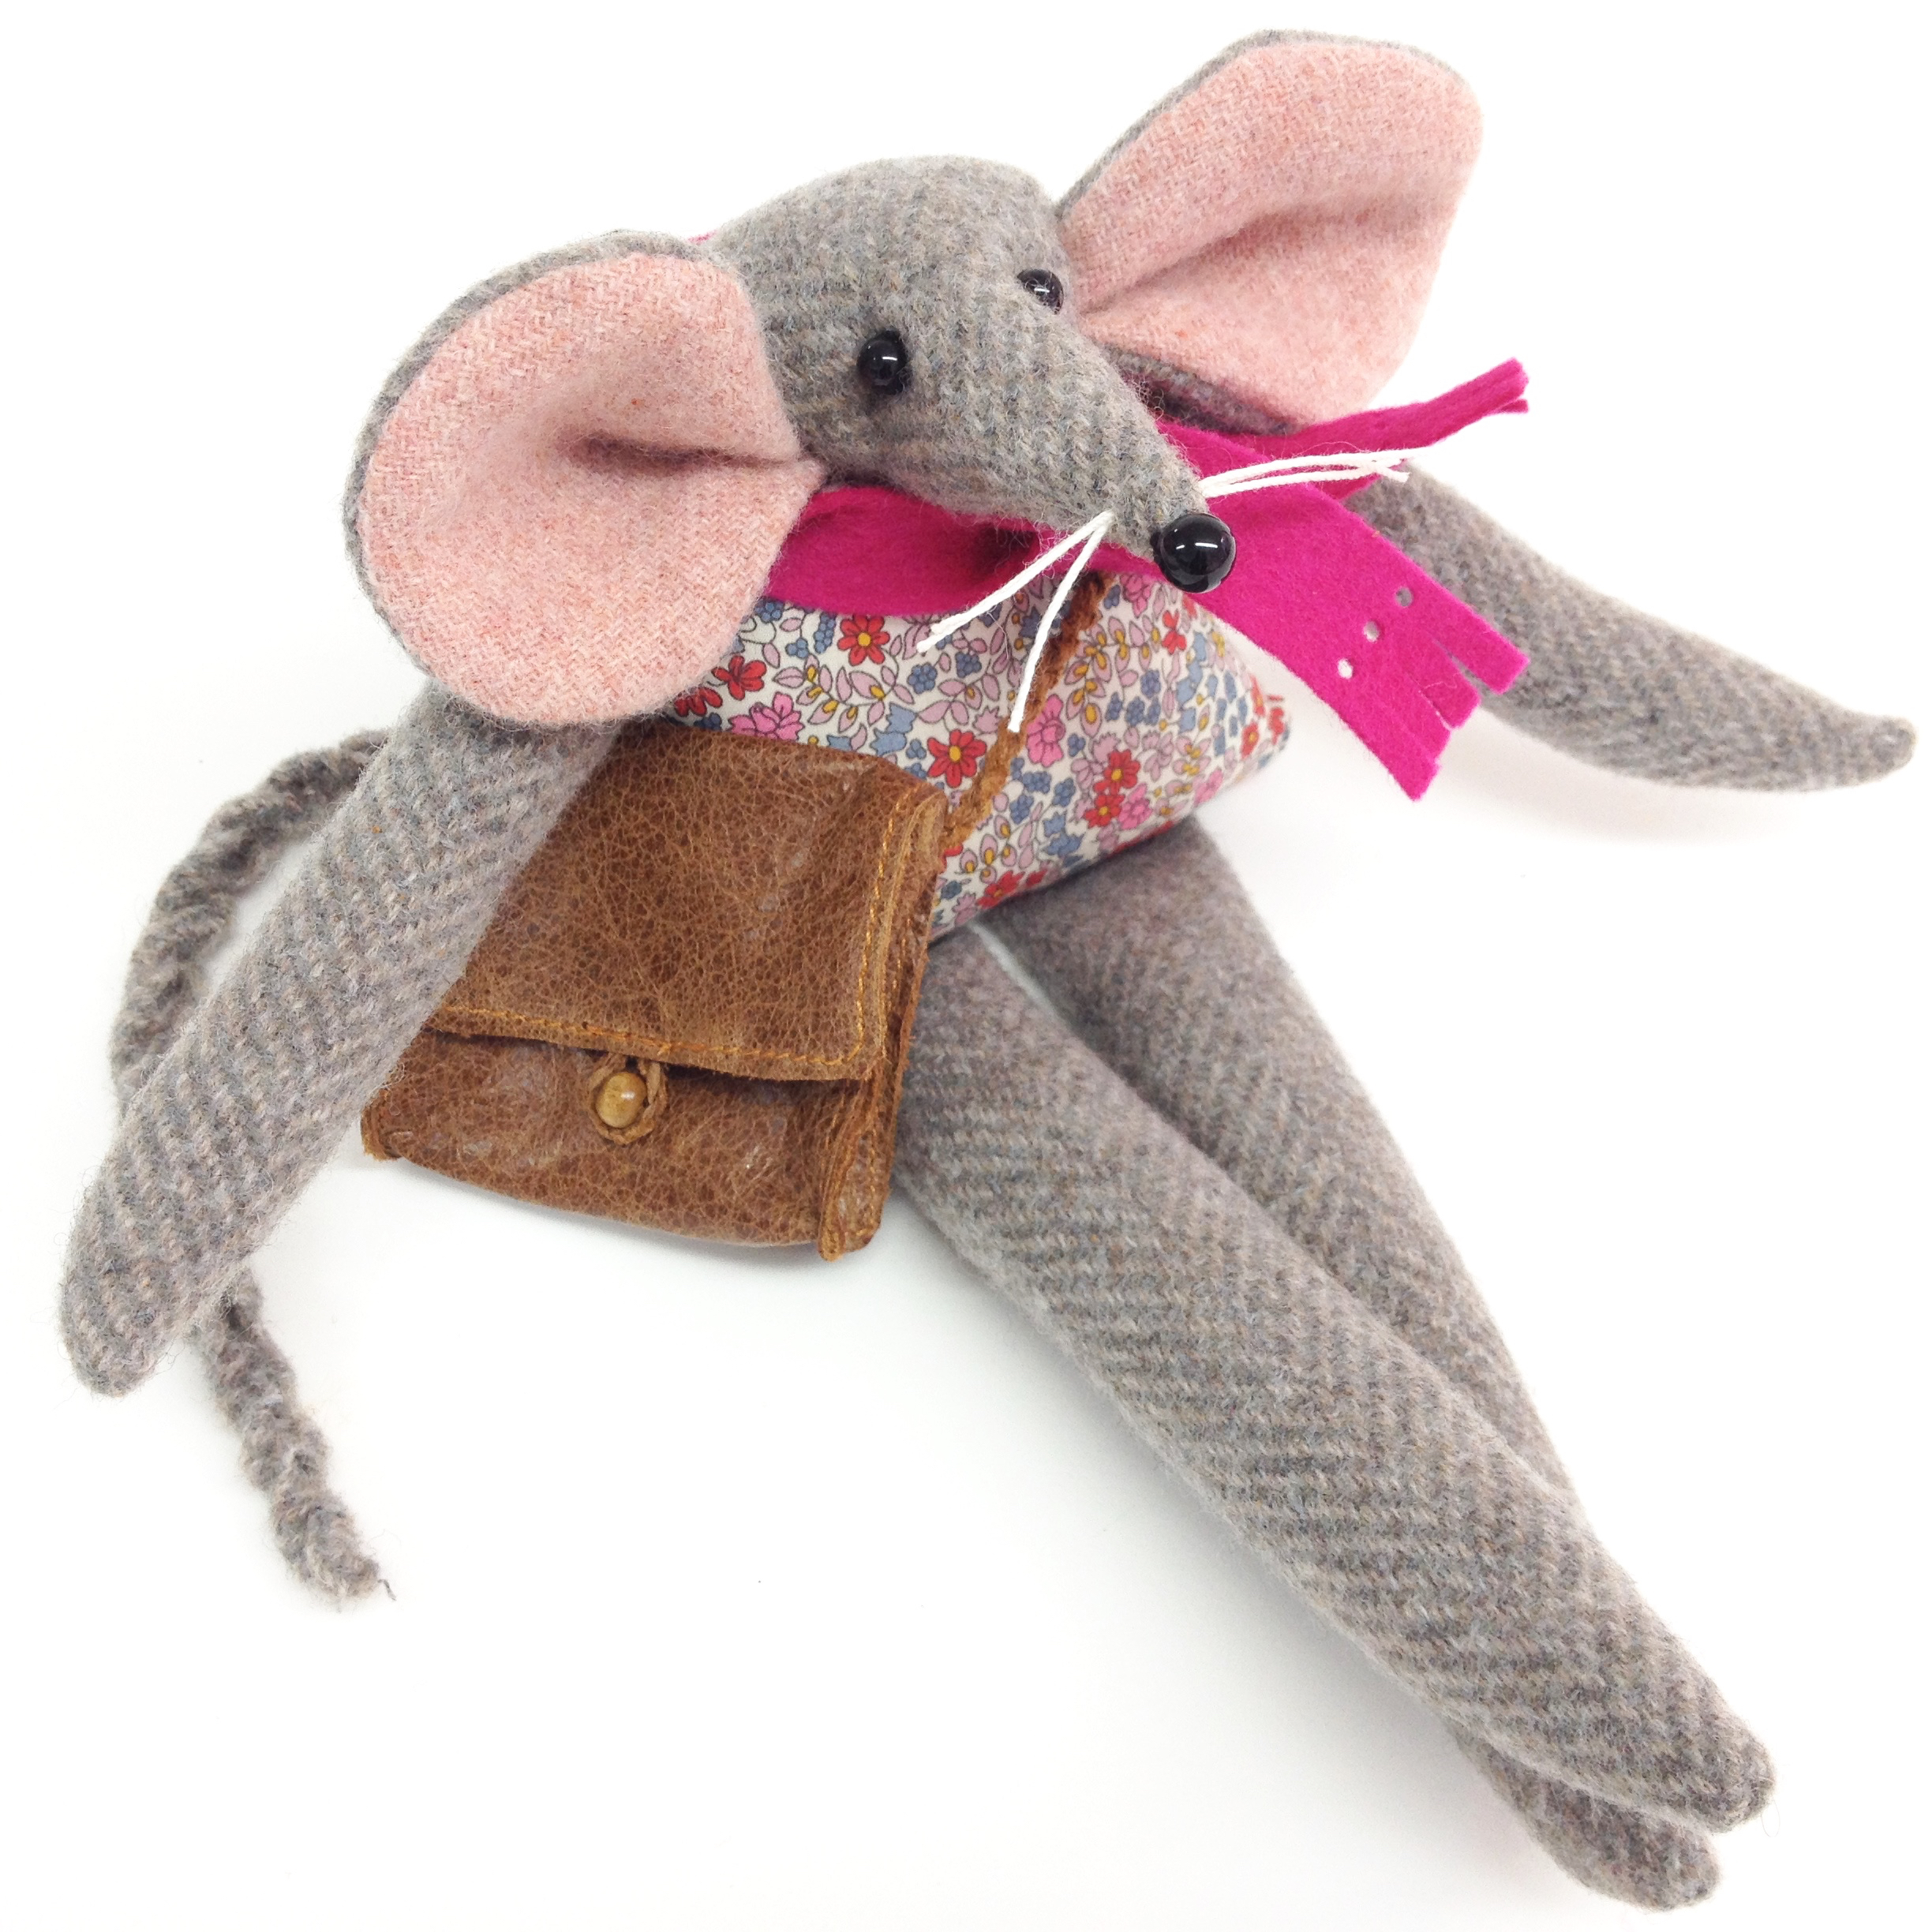 Artist mouse rag doll handmade from British tweed and Liberty fabrics with a leather satchel.